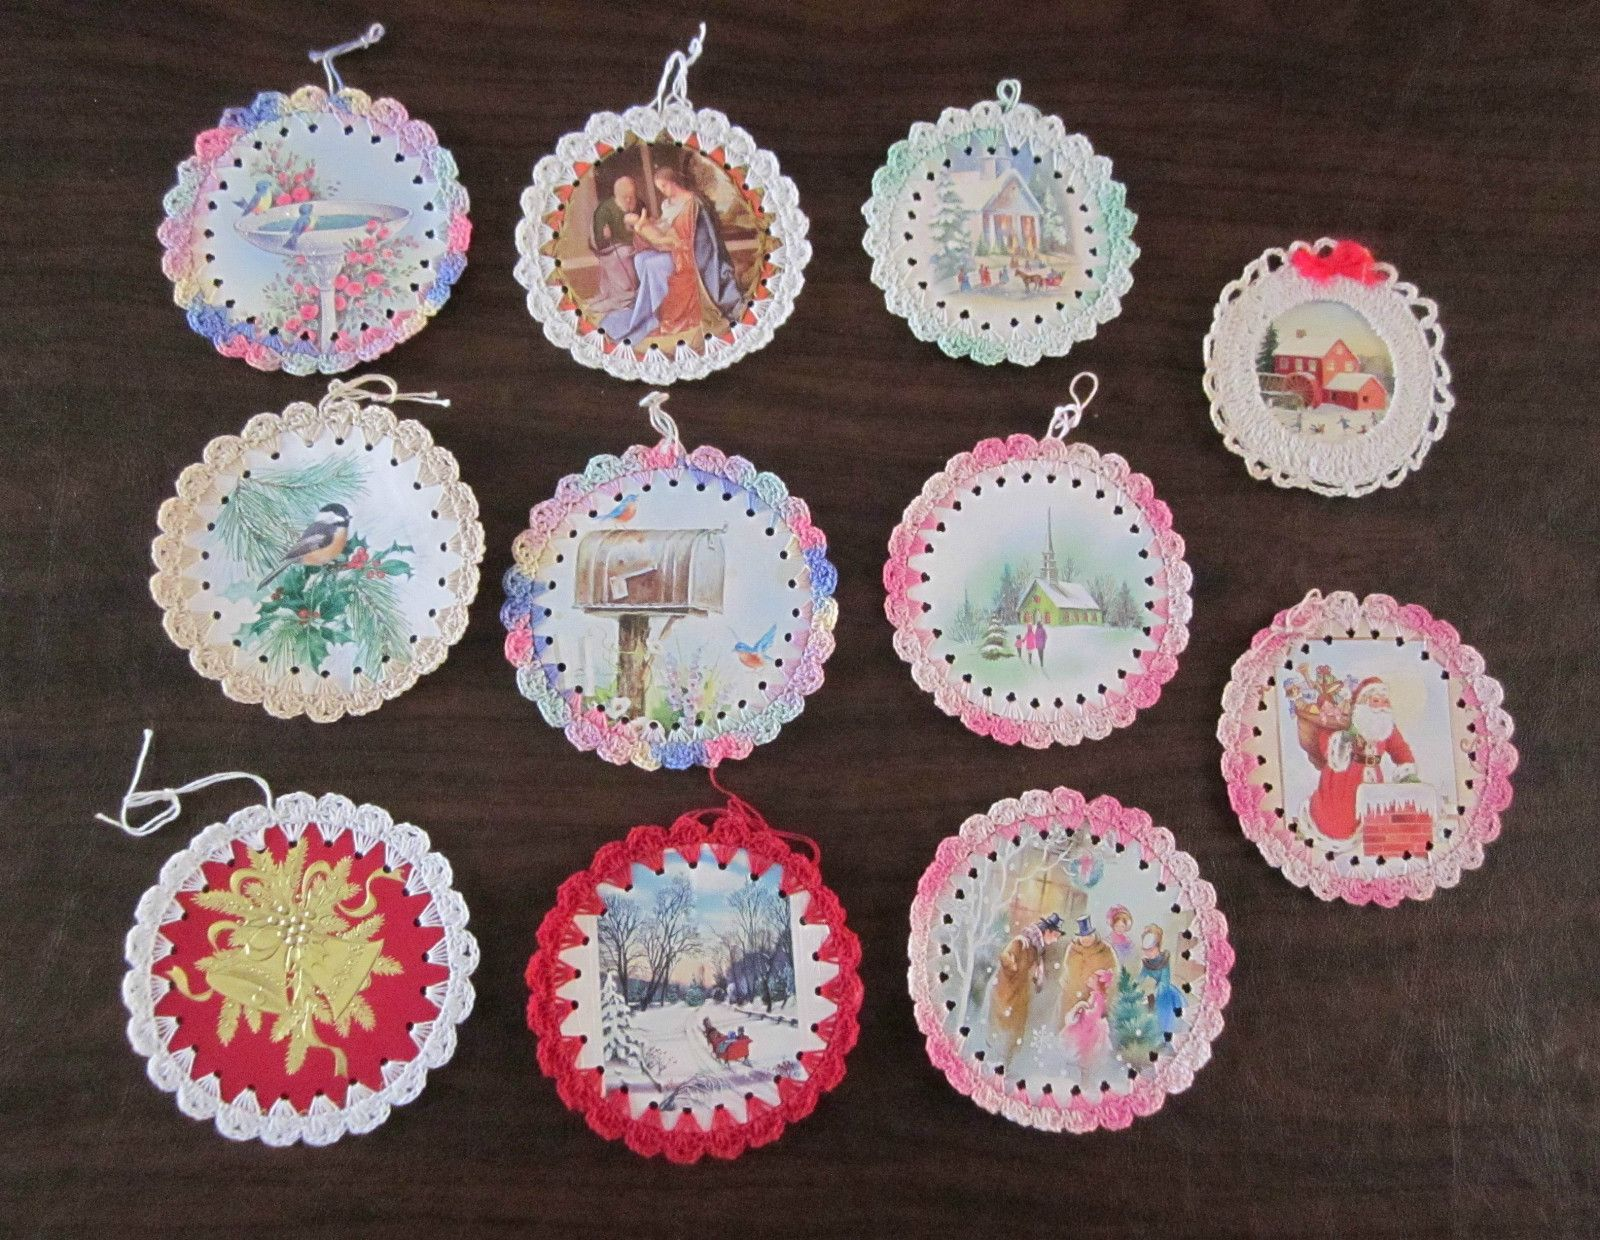 Lot of Handmade Christmas Ornaments Cards with Crochet Edge | eBay